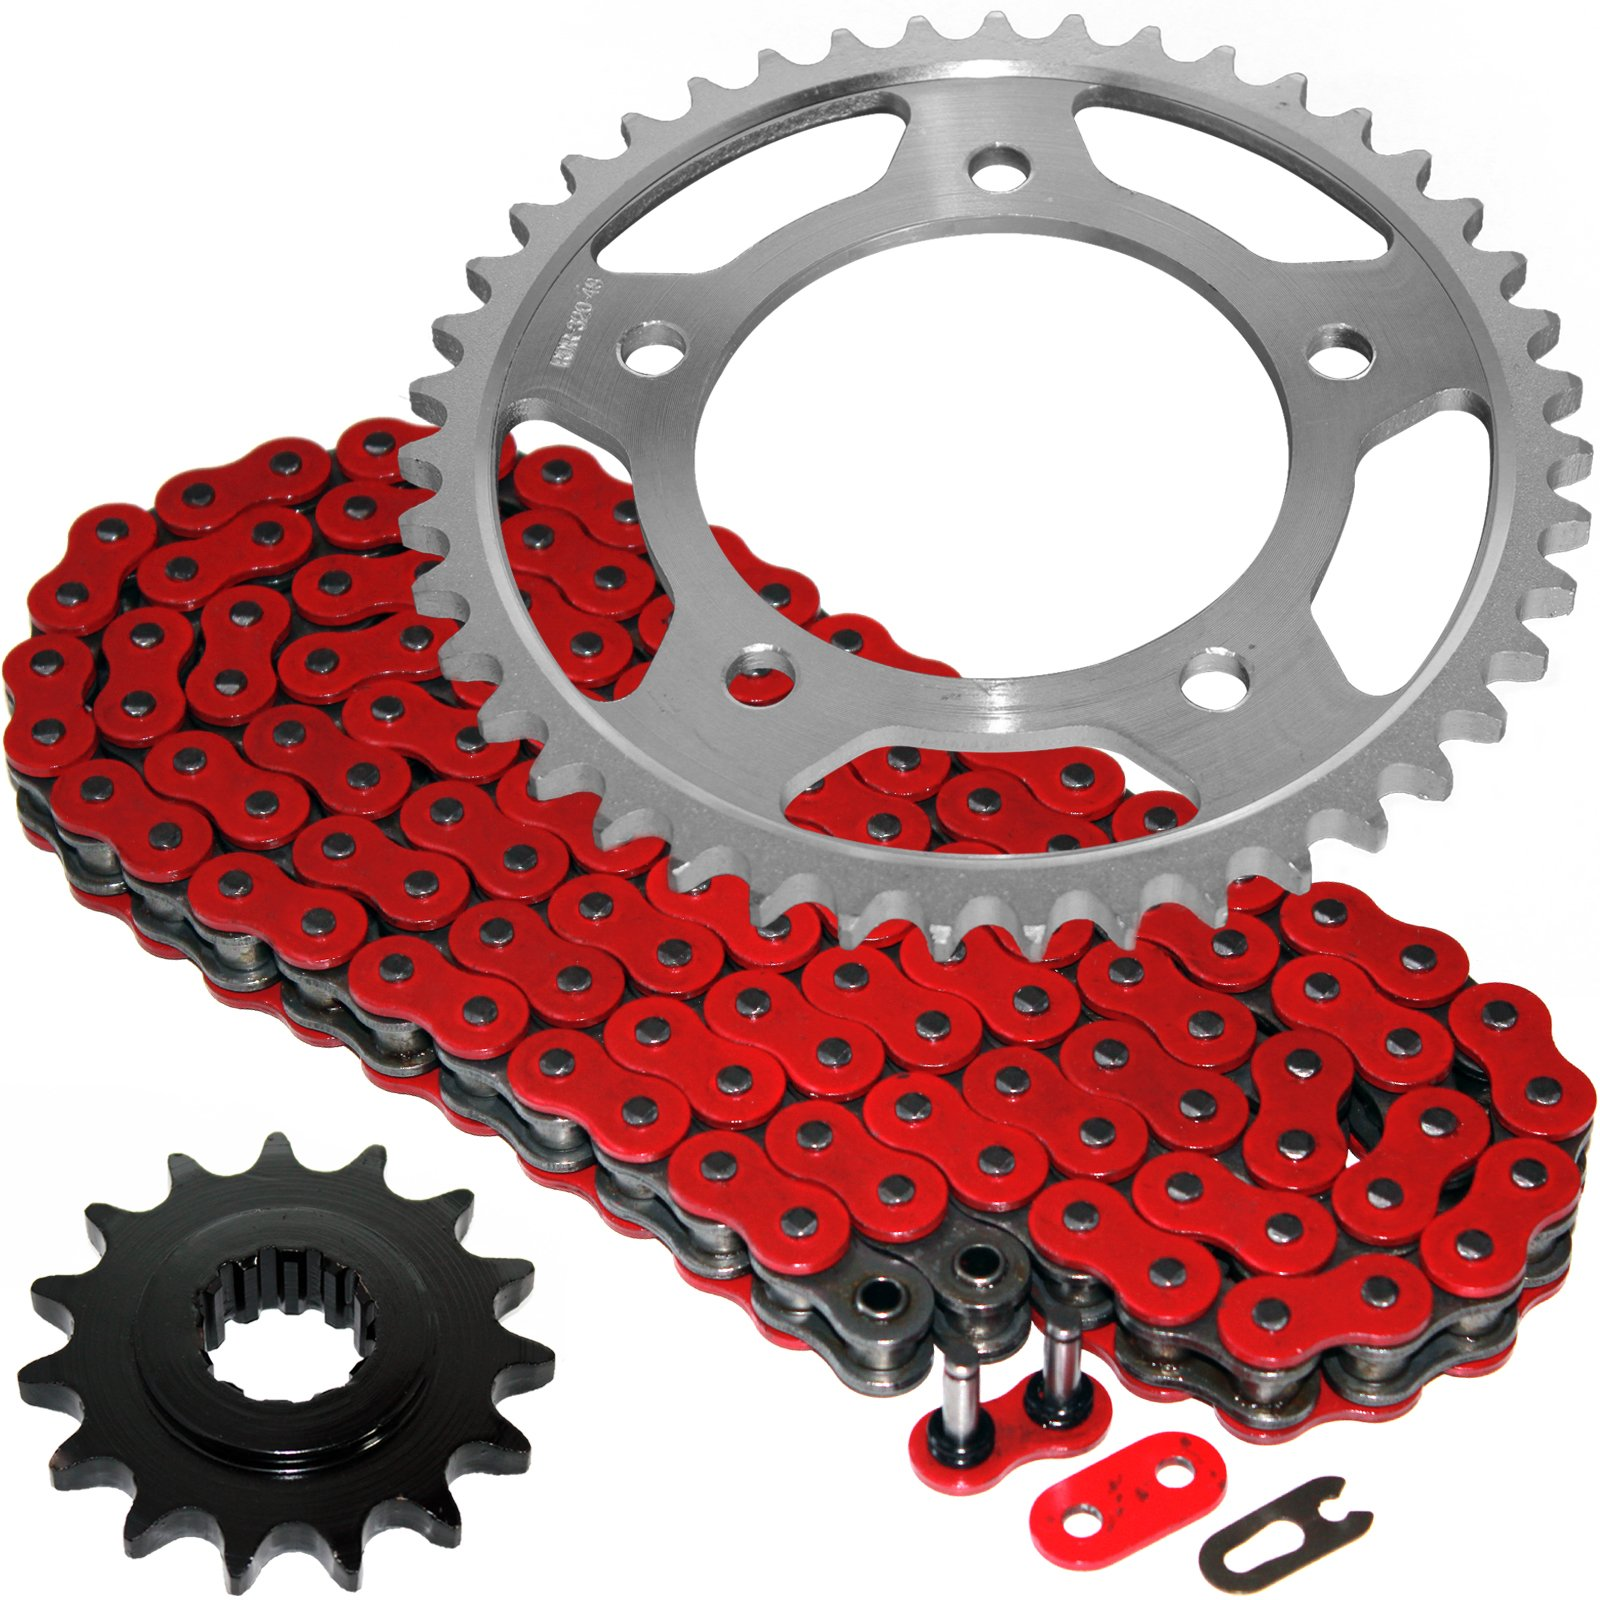 Caltric Red O-Ring Drive Chain & Sprockets Kit Fits HONDA CBR600F3 CBR-600F3 Super Sport 600F3 1995-1996